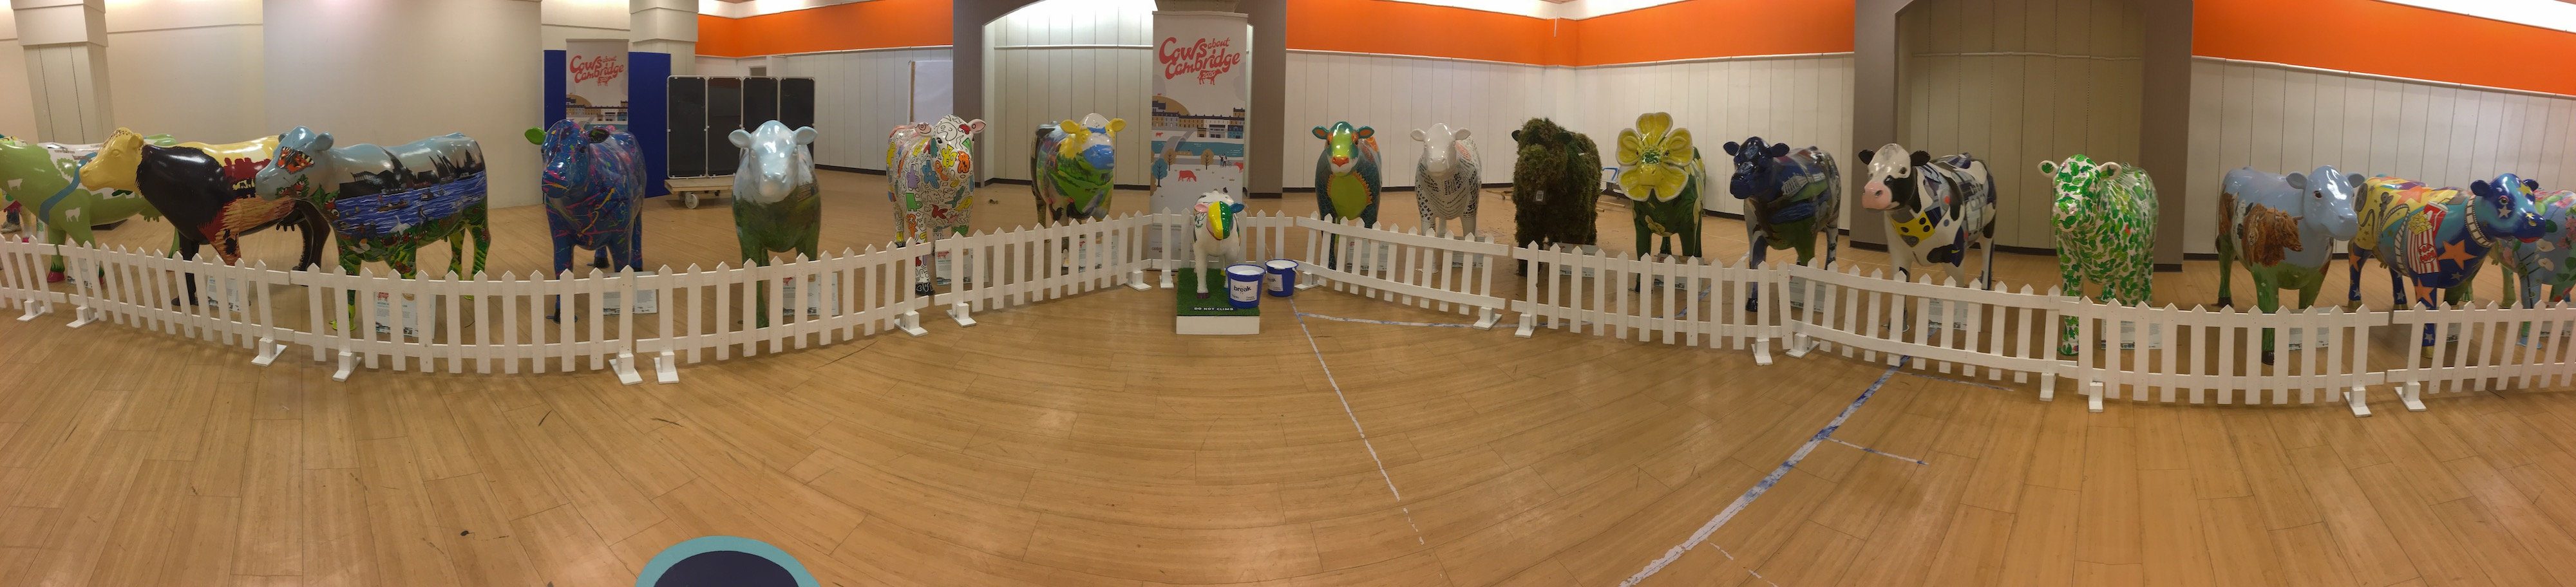 Panoramic view of 18 cows on display in the Grafton Centre